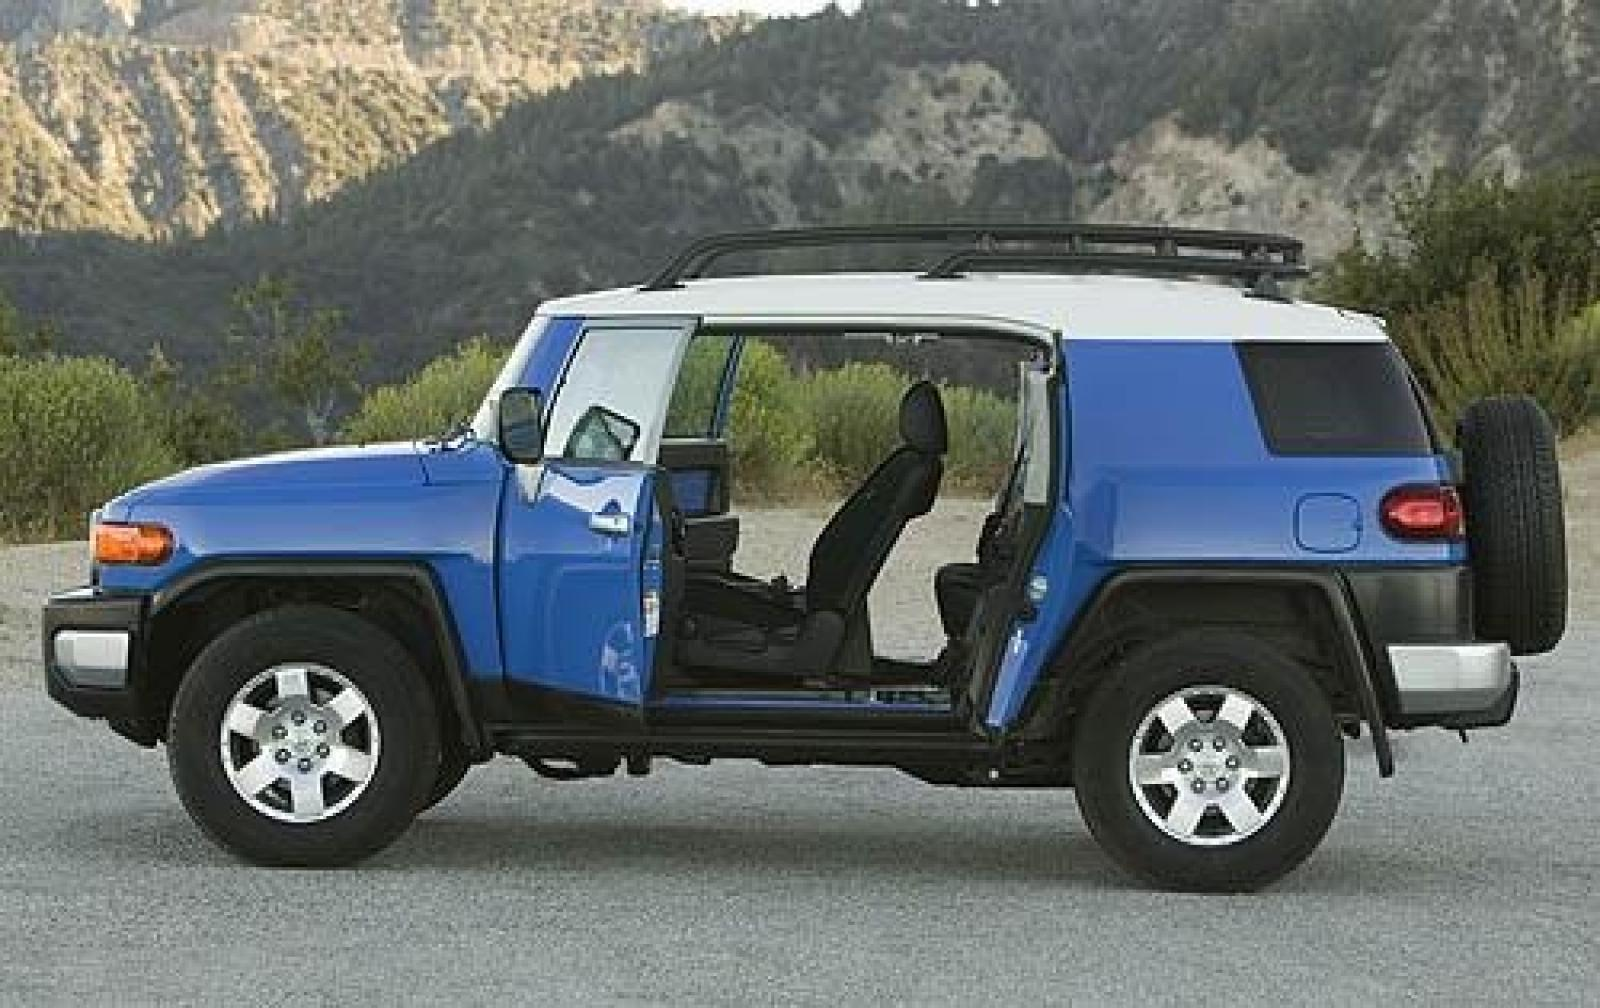 2010 toyota fj cruiser information and photos zombiedrive. Black Bedroom Furniture Sets. Home Design Ideas